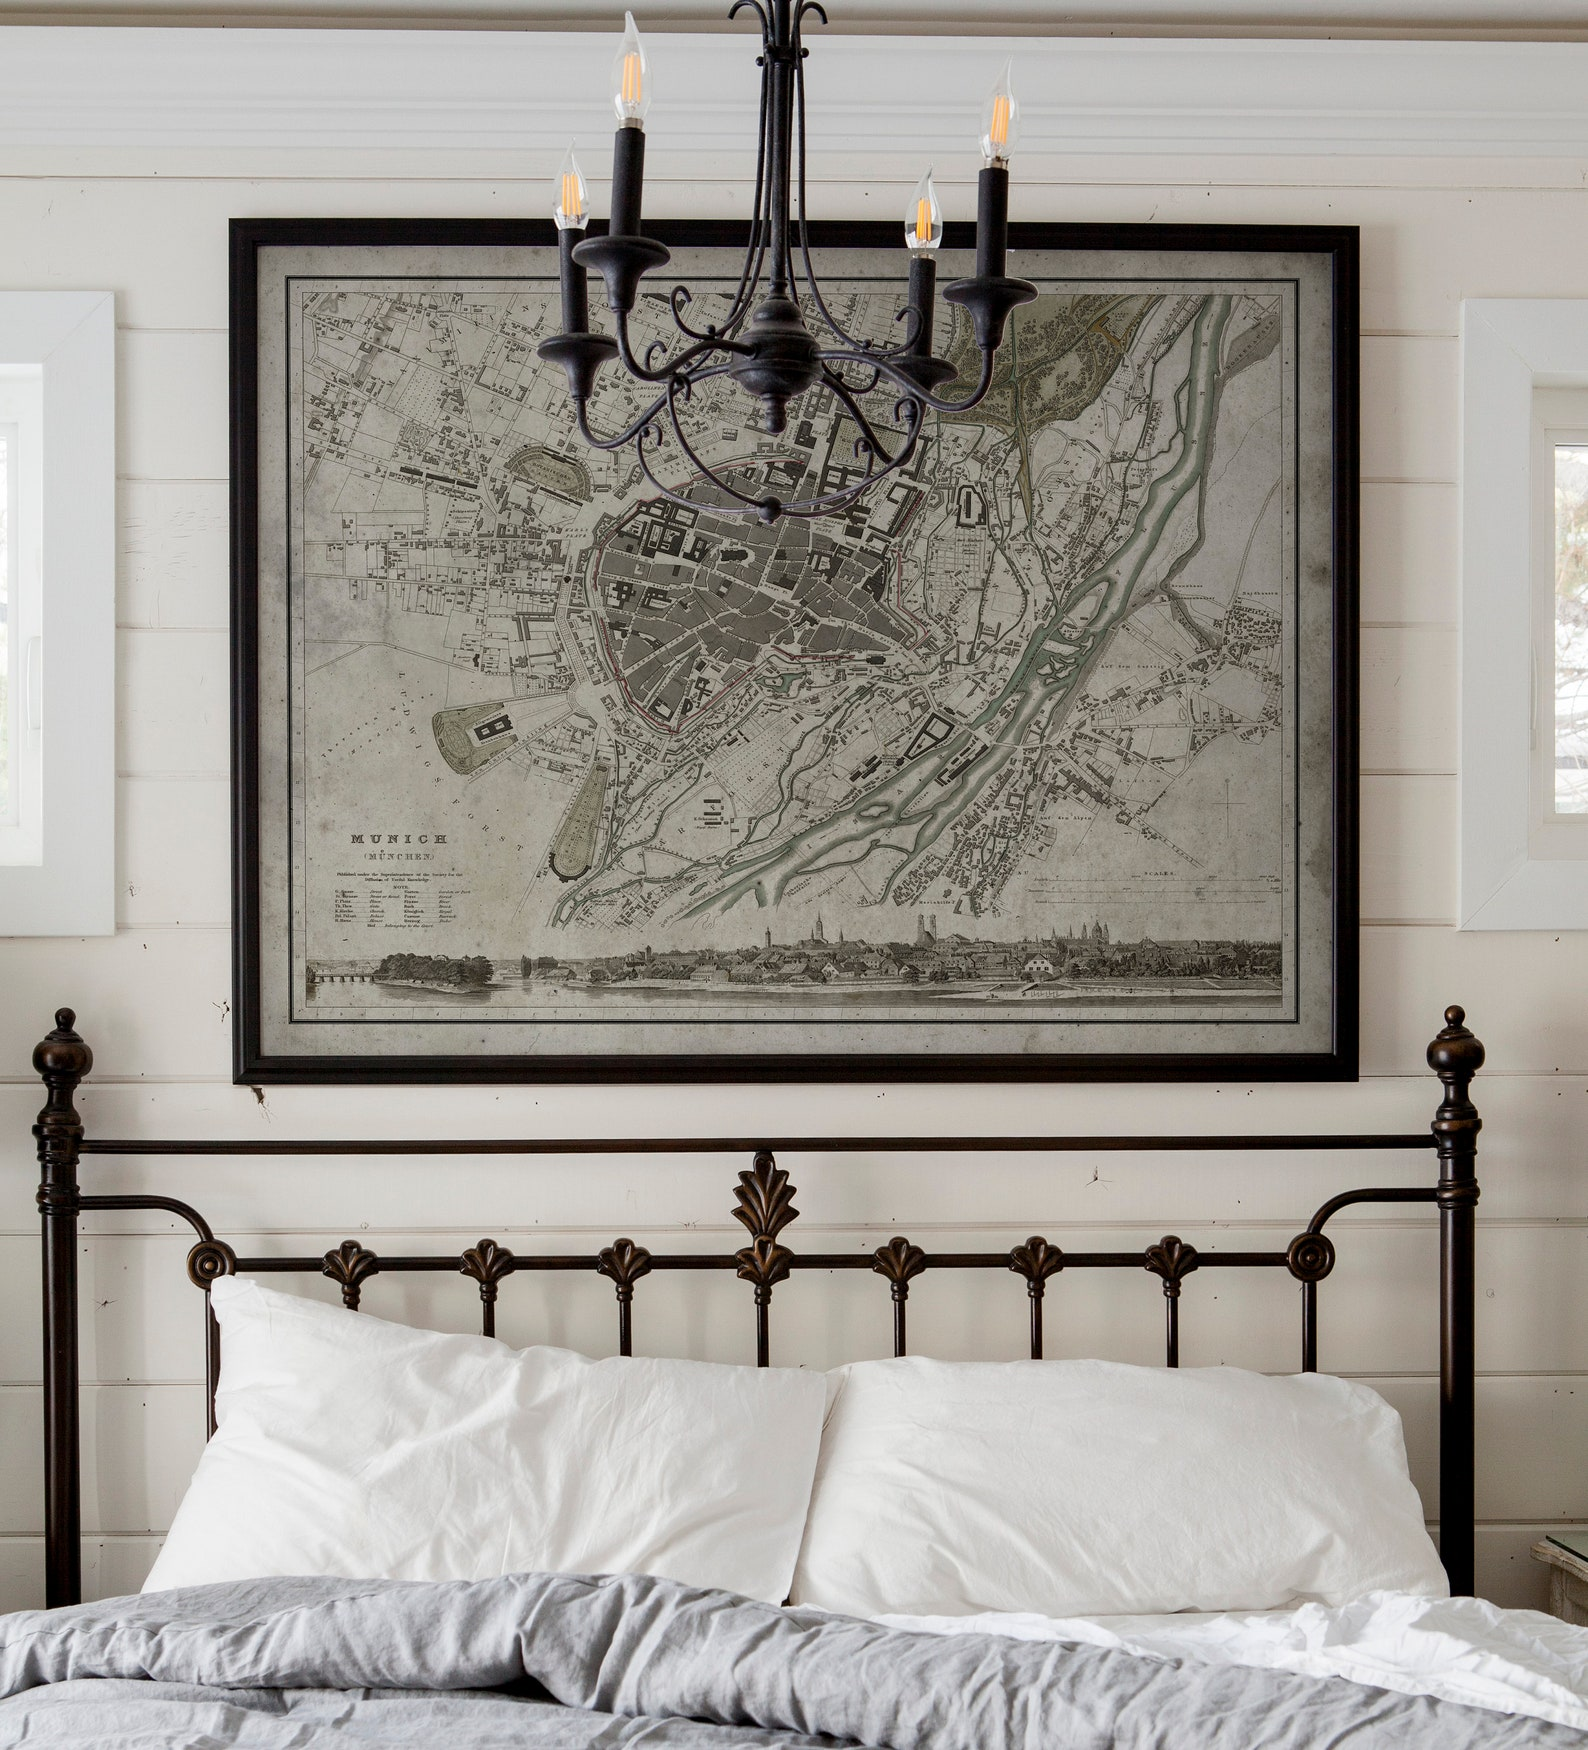 Munich Map | Vintage Map of Munich, Germany | Vintage Wall Art | Home Decor | Framed Options Available | Circa 19th C.